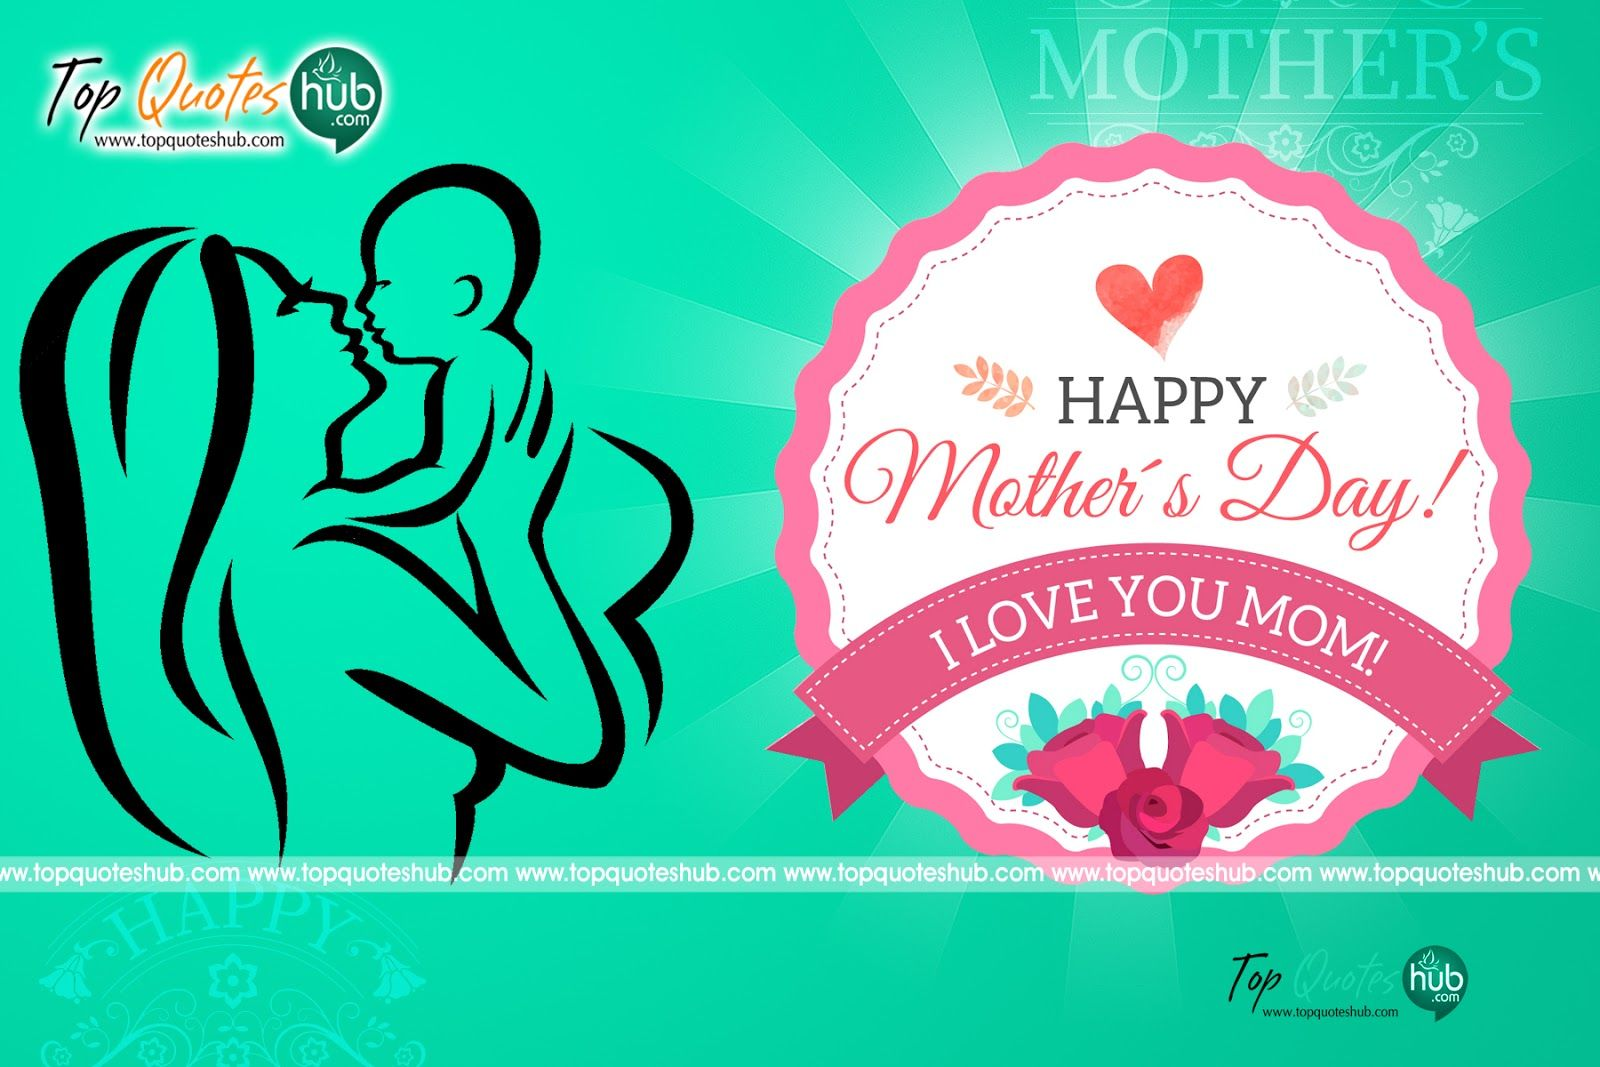 Best nice telugu mothers day quotations best awesome nice telugu happy mothers day greetings and wishes hd wallpapers kristyandbryce Choice Image